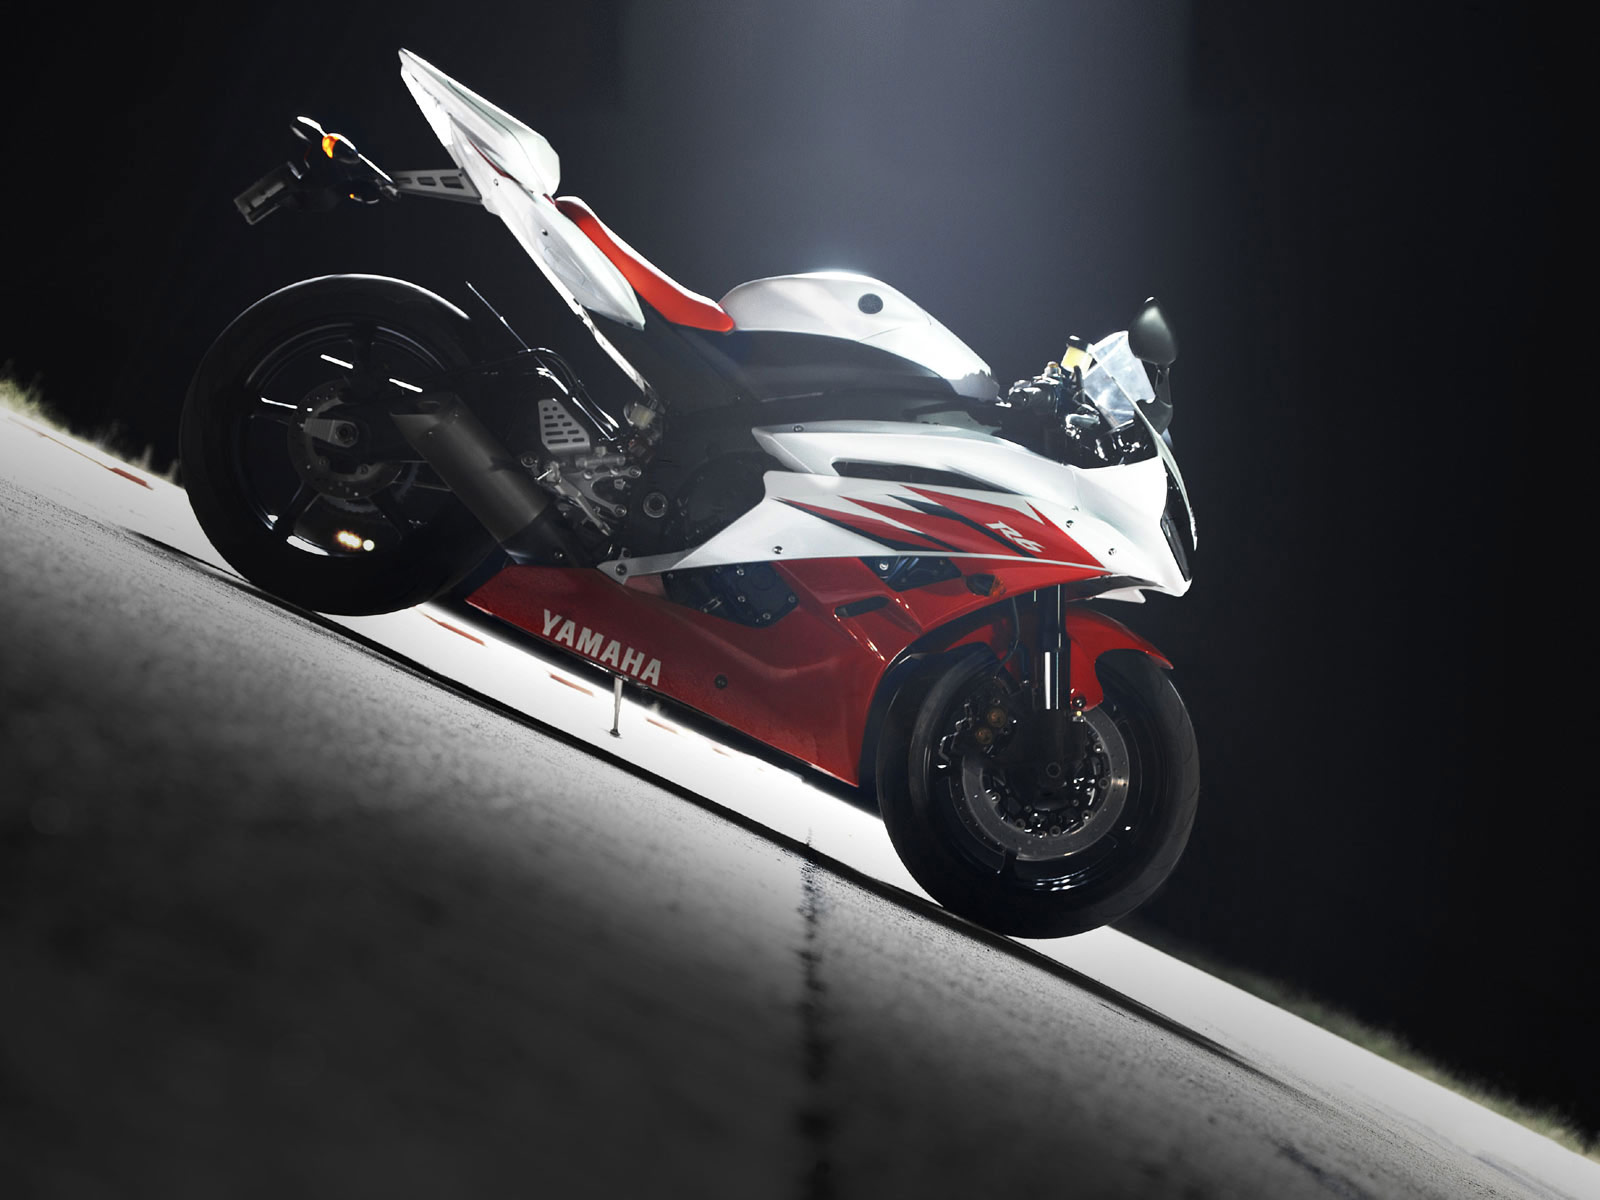 2006 YAMAHA YZF R6 Motorcycle Pictures And Specifications